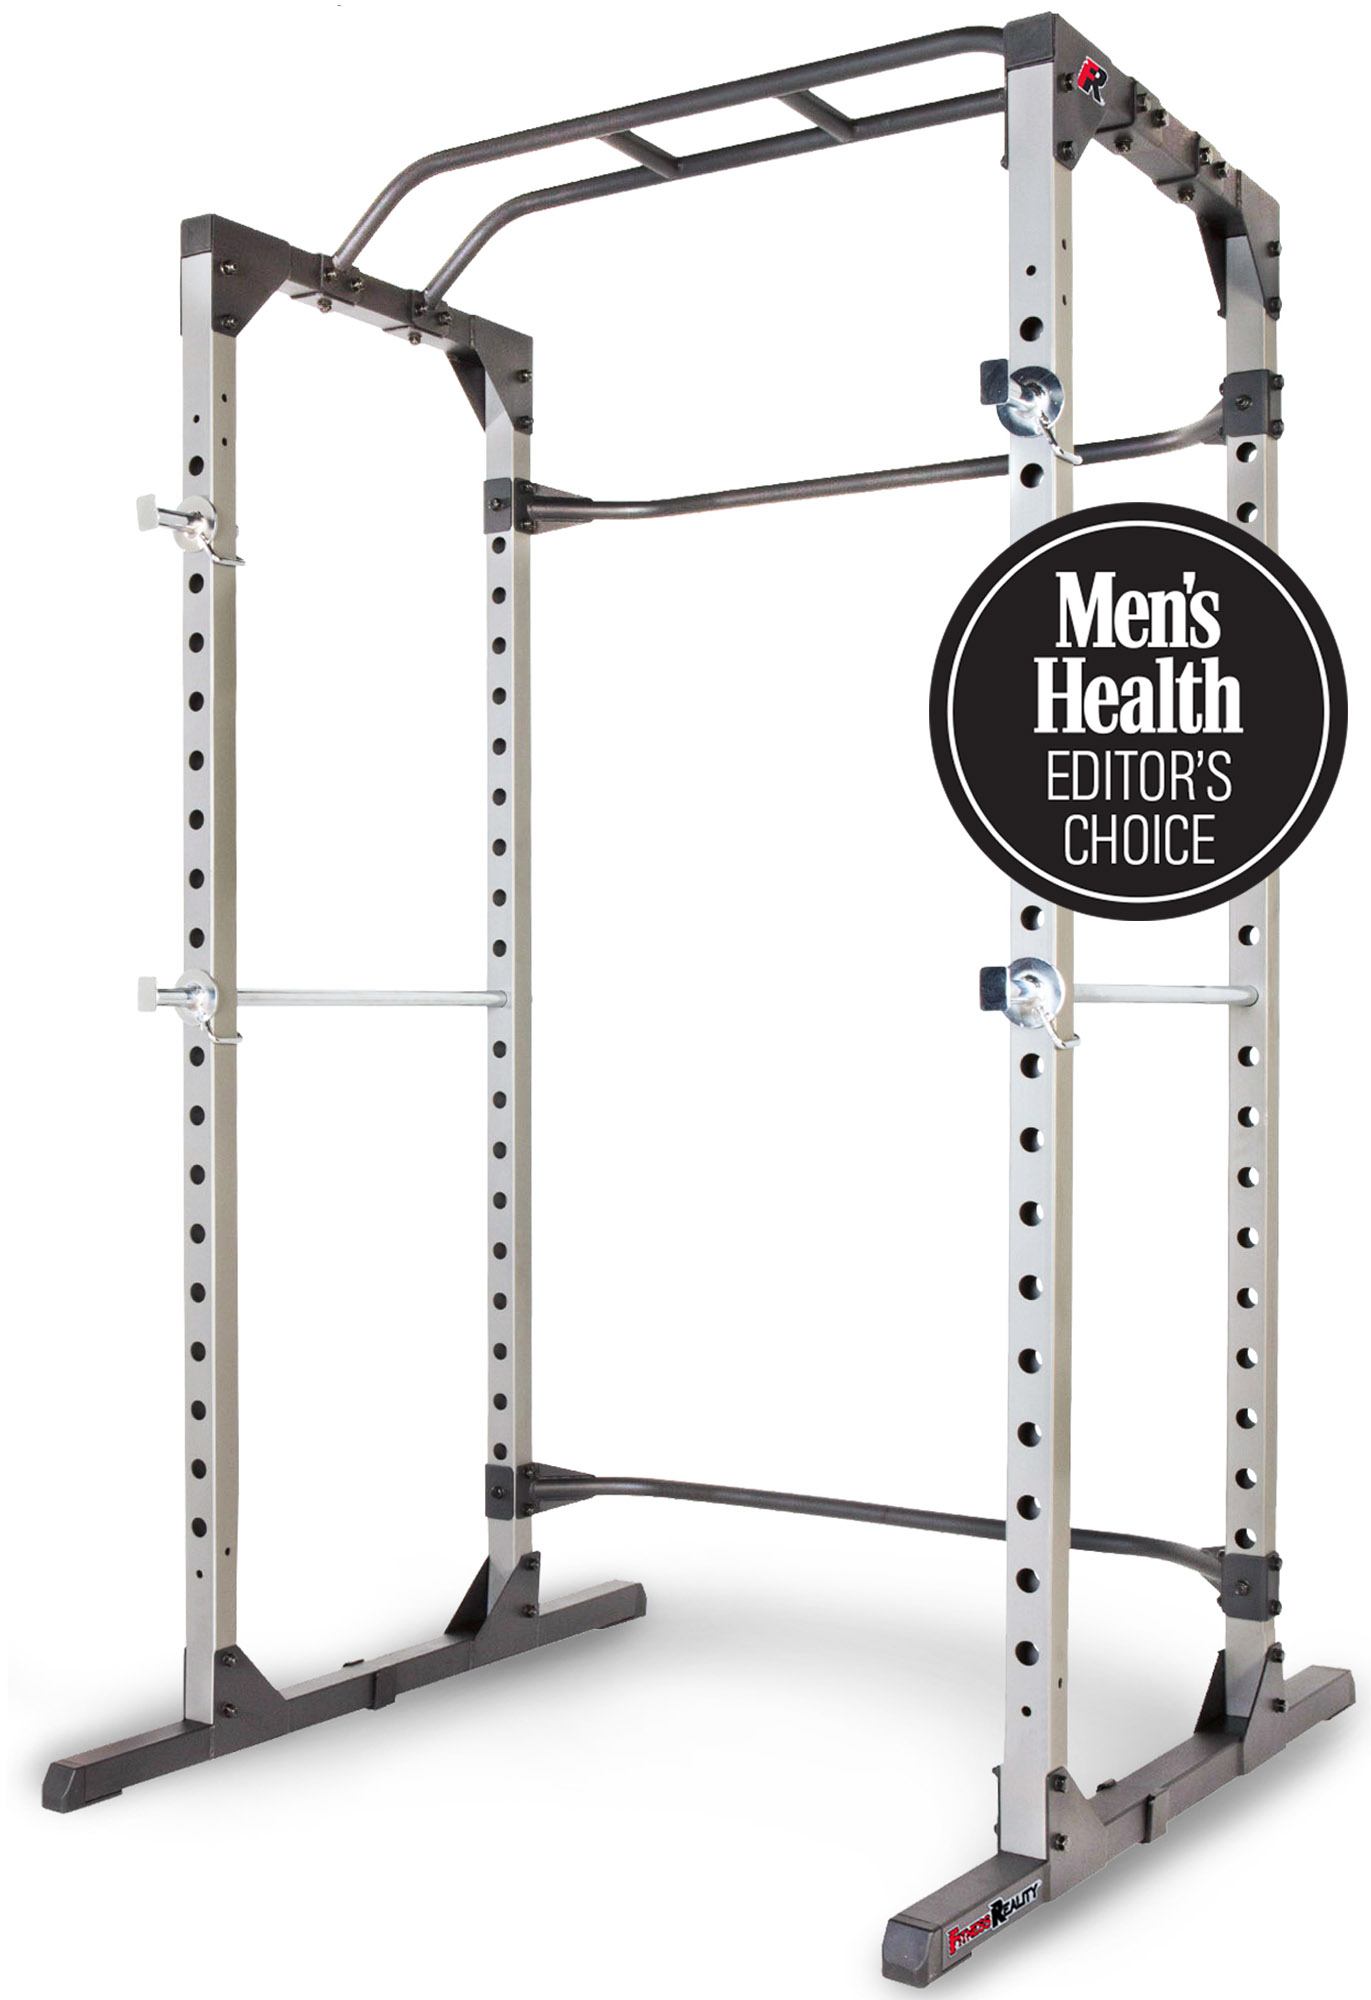 fitness reality 810xlt super max power rack cage with 800lbs weight capacity